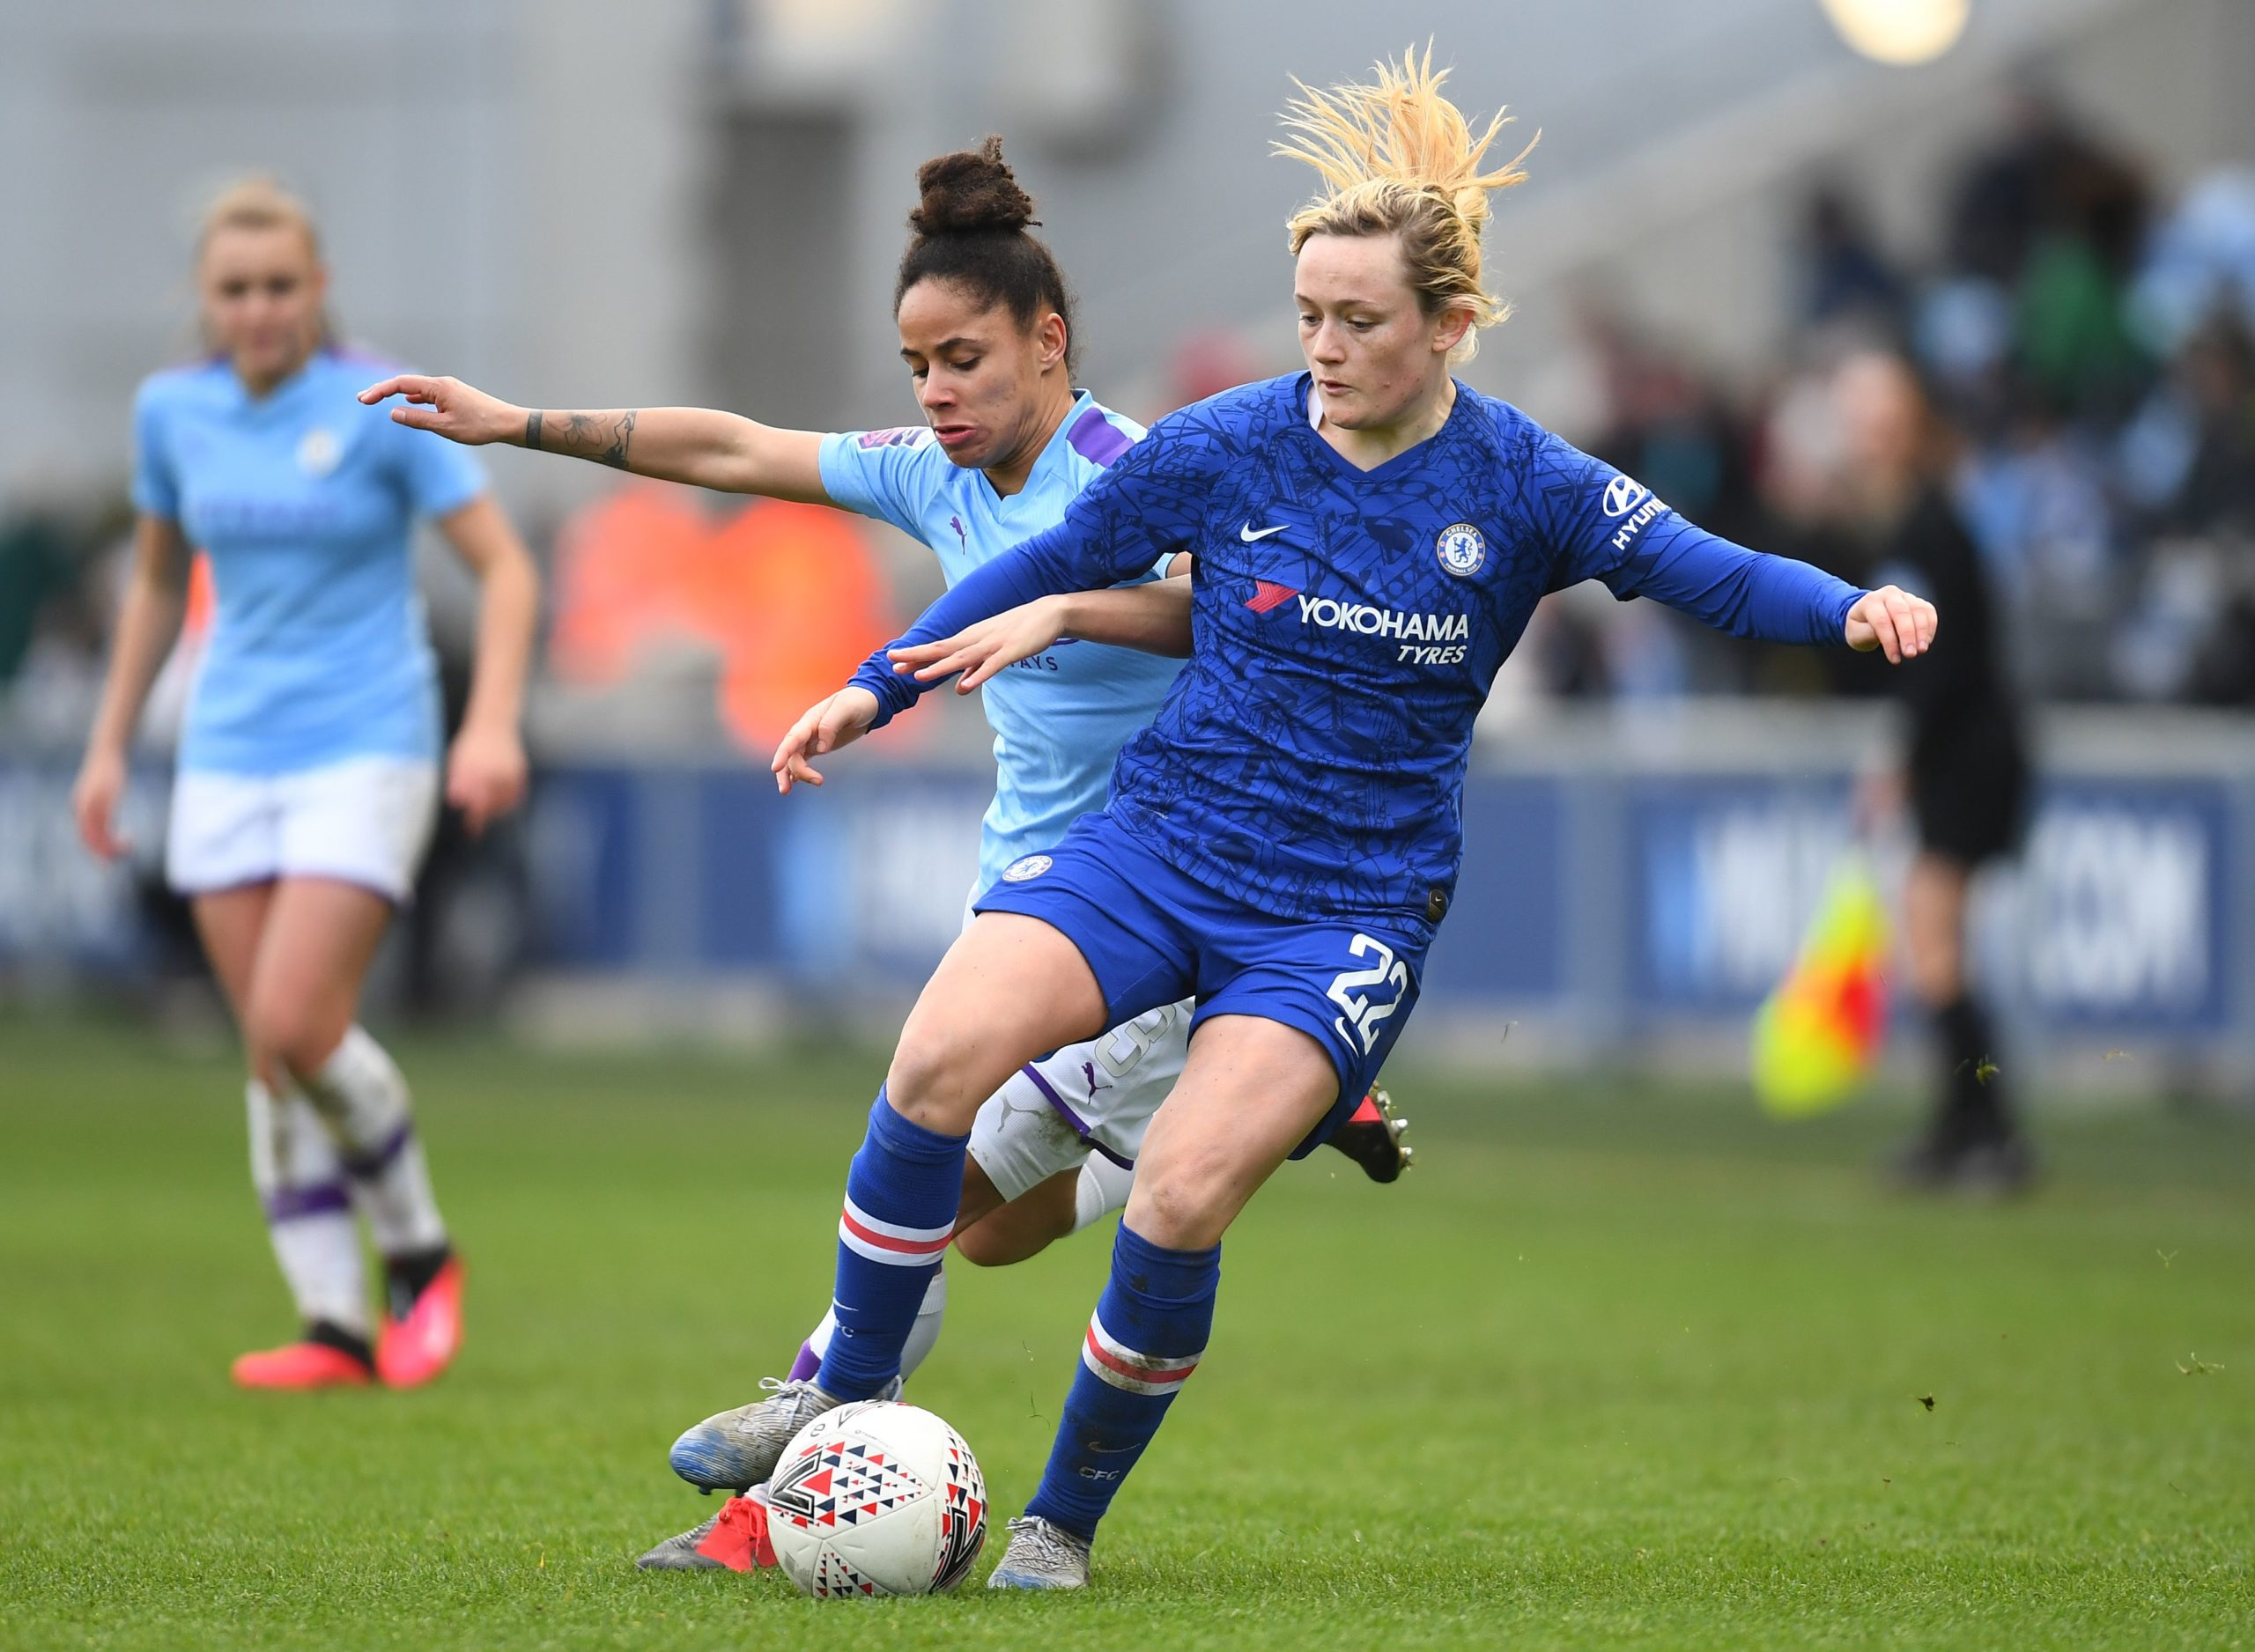 Fundingg from the English Premier League may help the Women's Super League